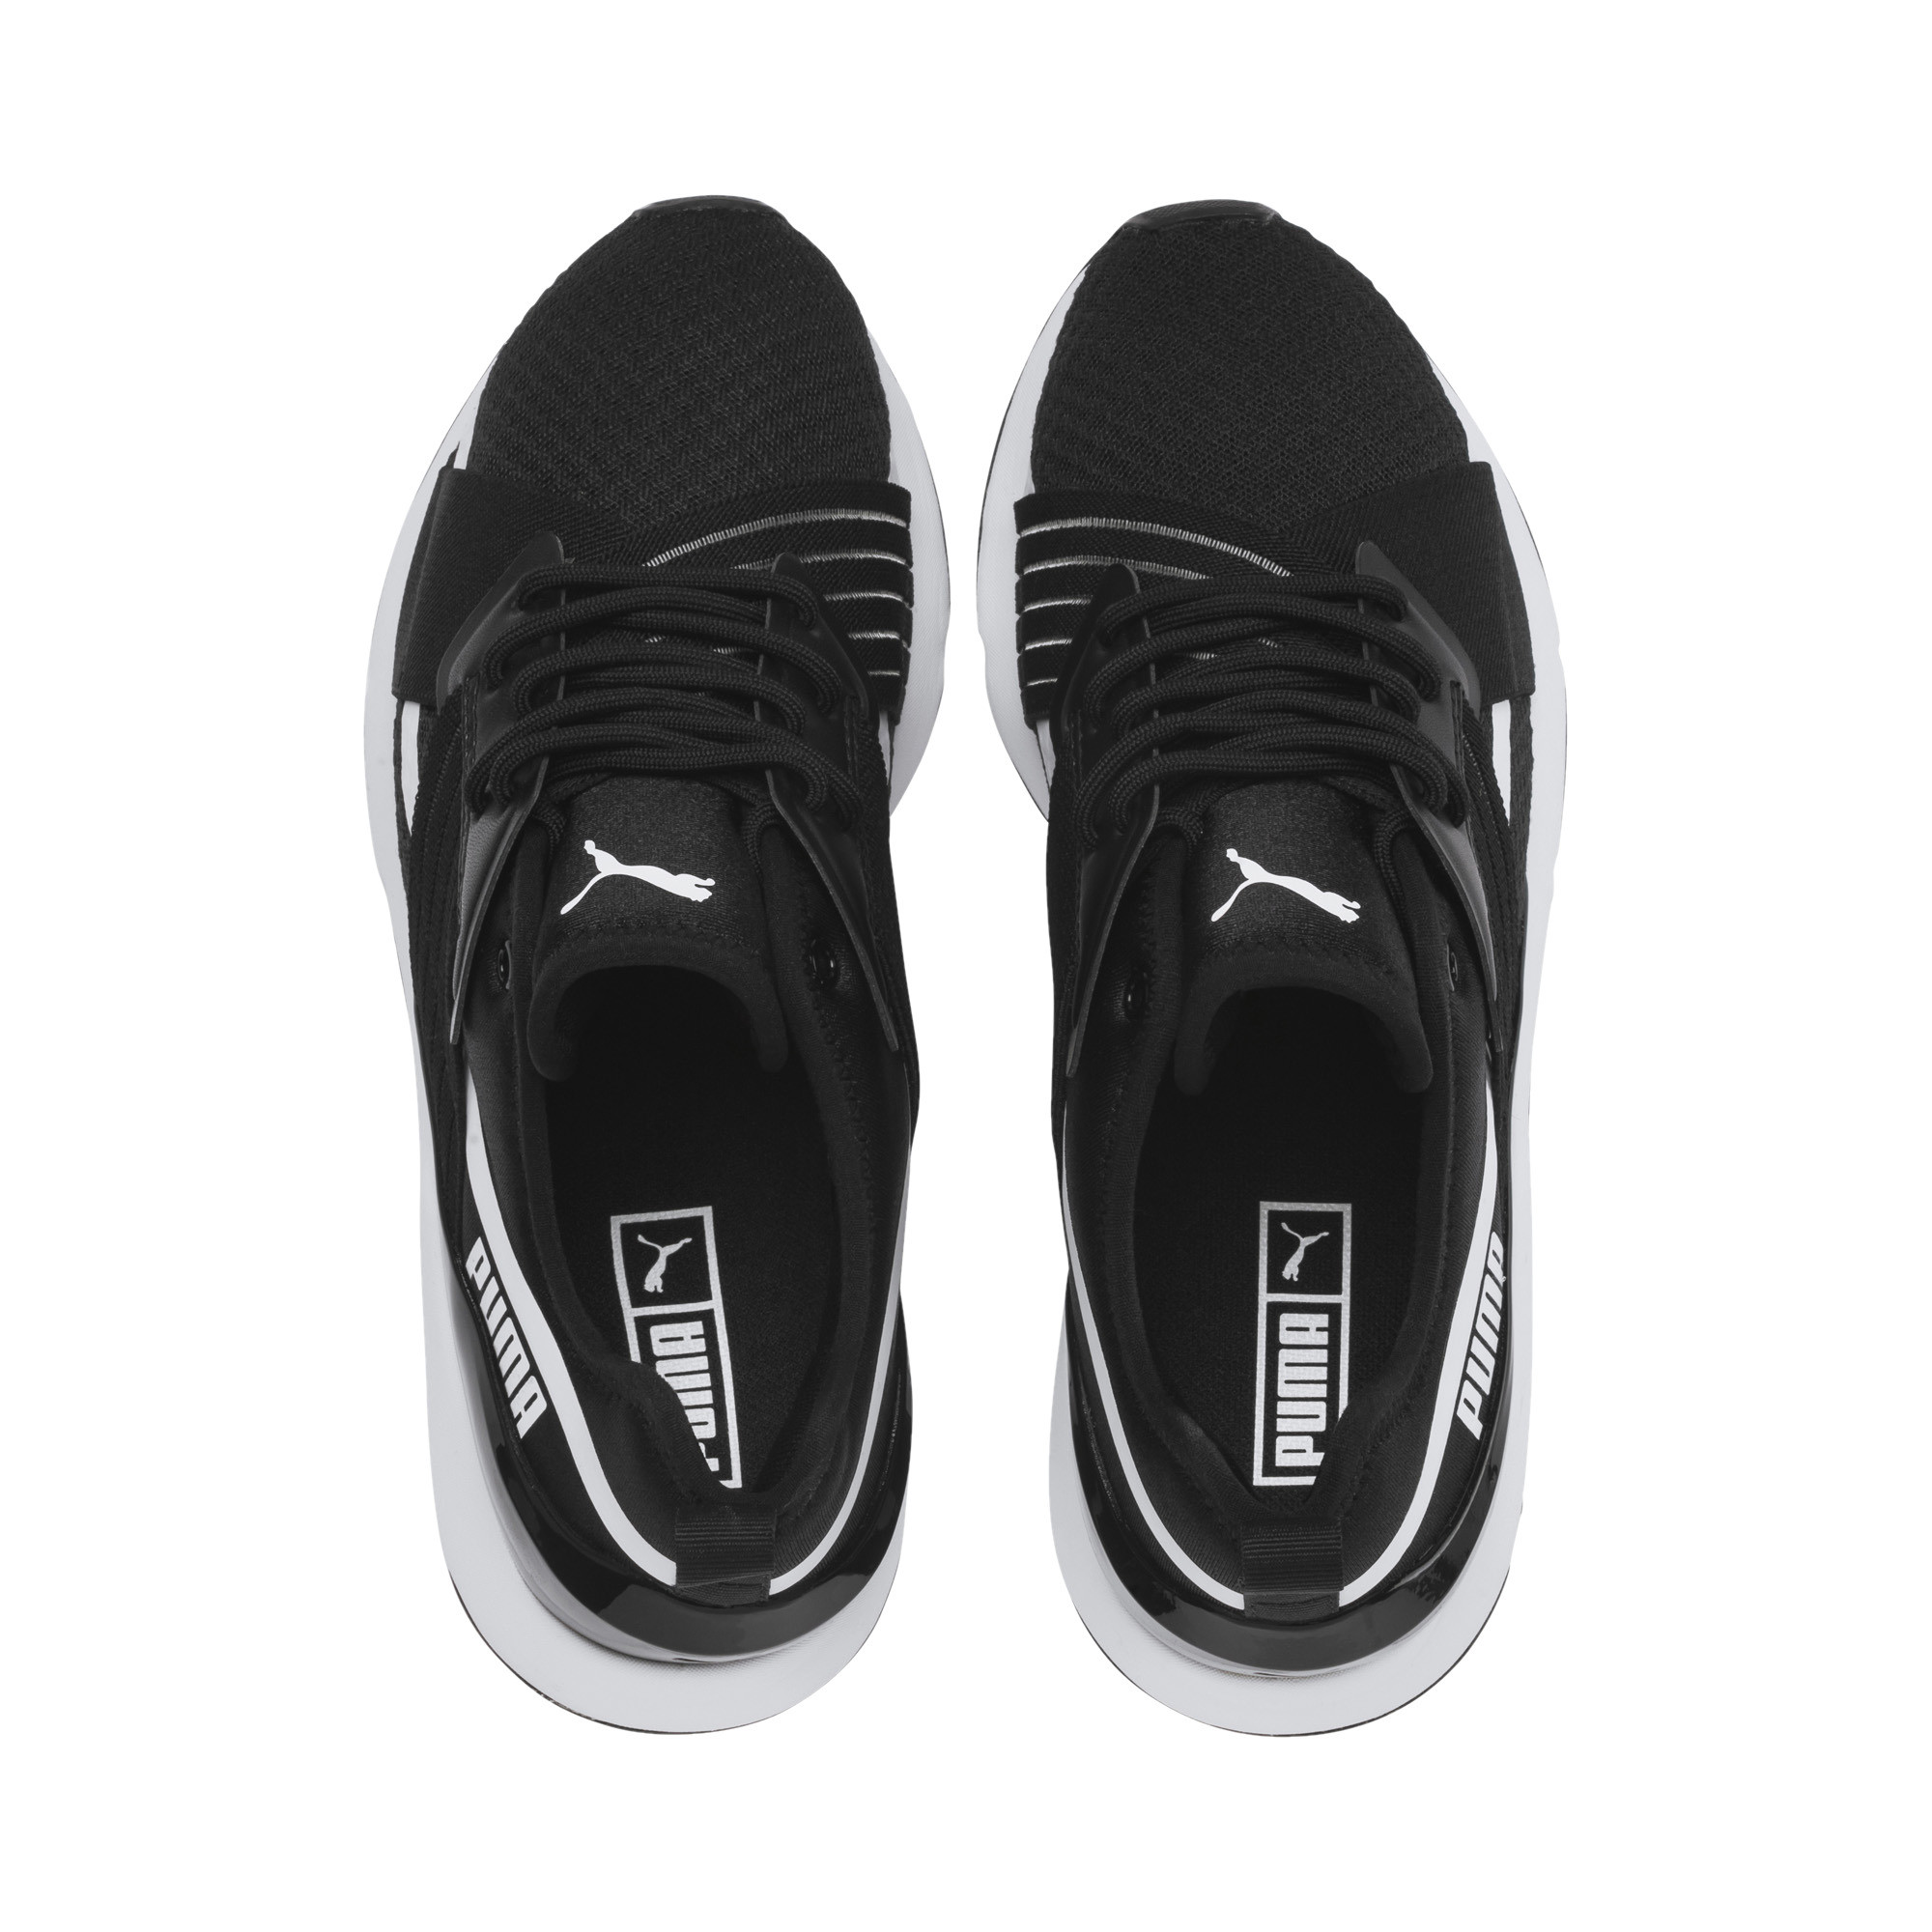 PUMA-Muse-X-2-Women-039-s-Sneakers-Women-Shoe-Evolution thumbnail 14